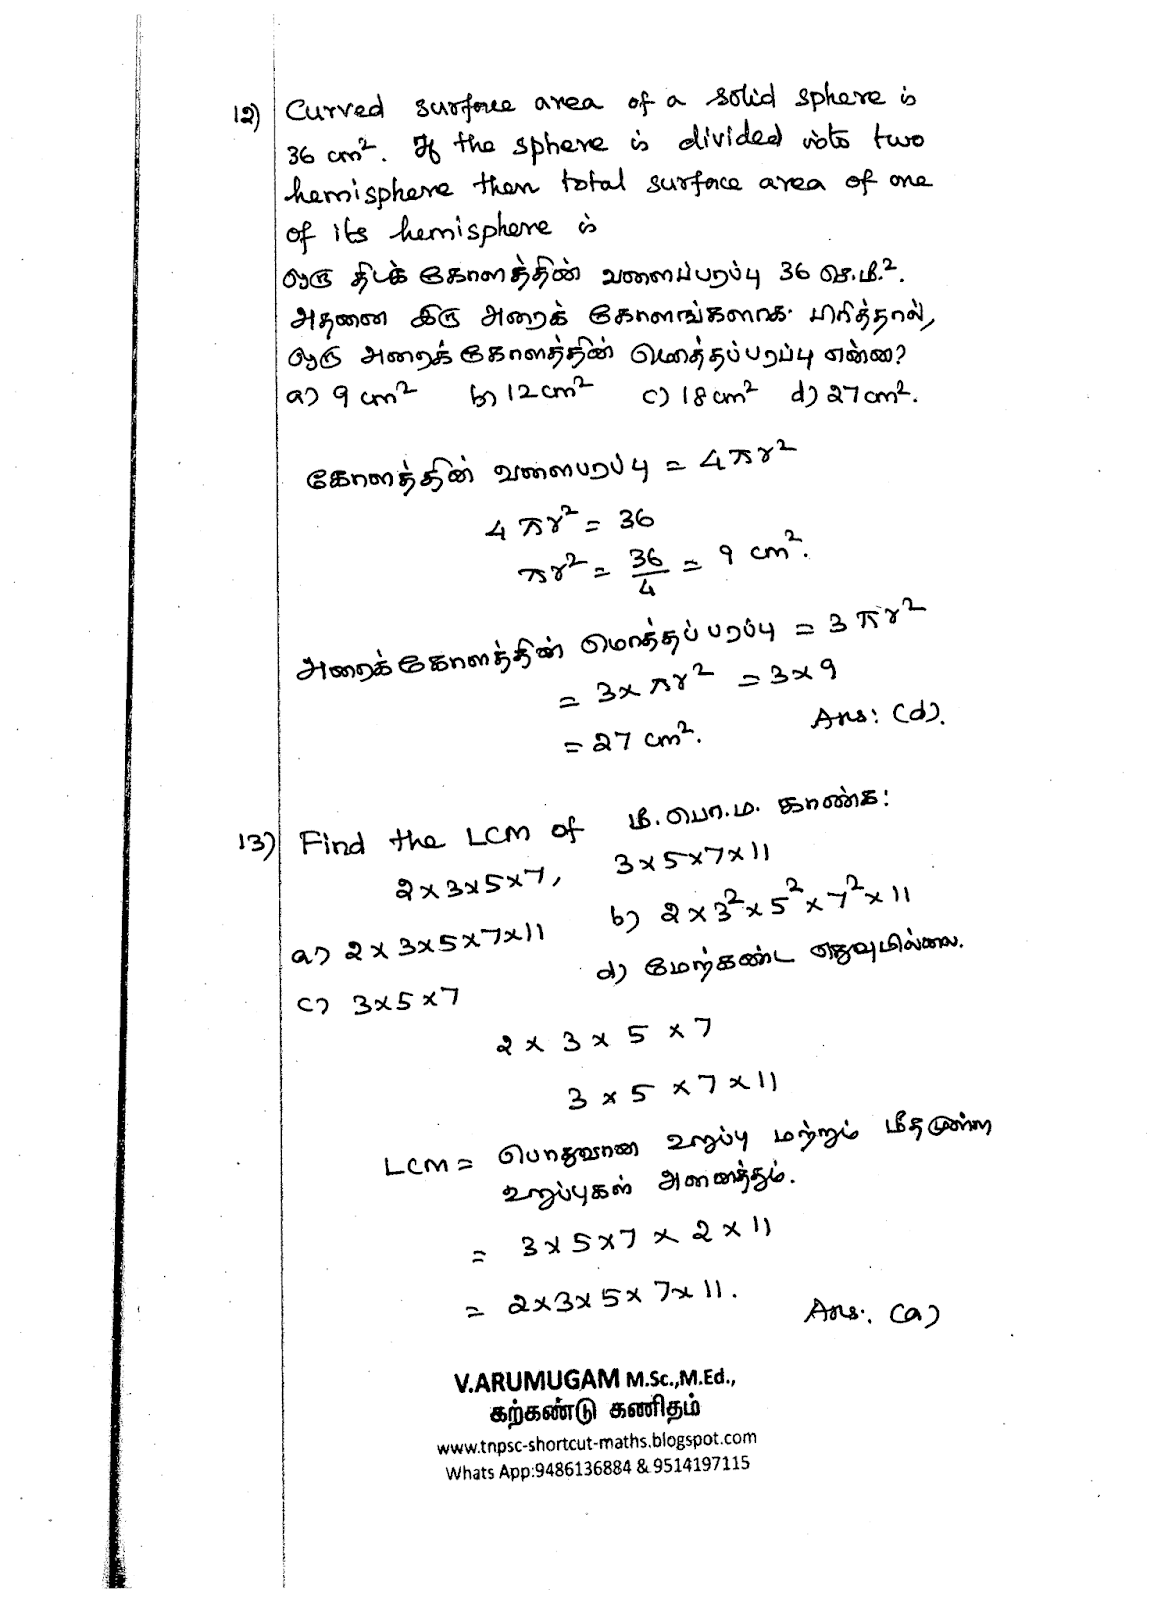 TNPSC – 2020 - Q-03 - Archaeological Officer in Archaeology Department in the Tamil Nadu General Subordinate Service EXAM - EXAM DATE: 29.02.2020. PAGE - 07/15